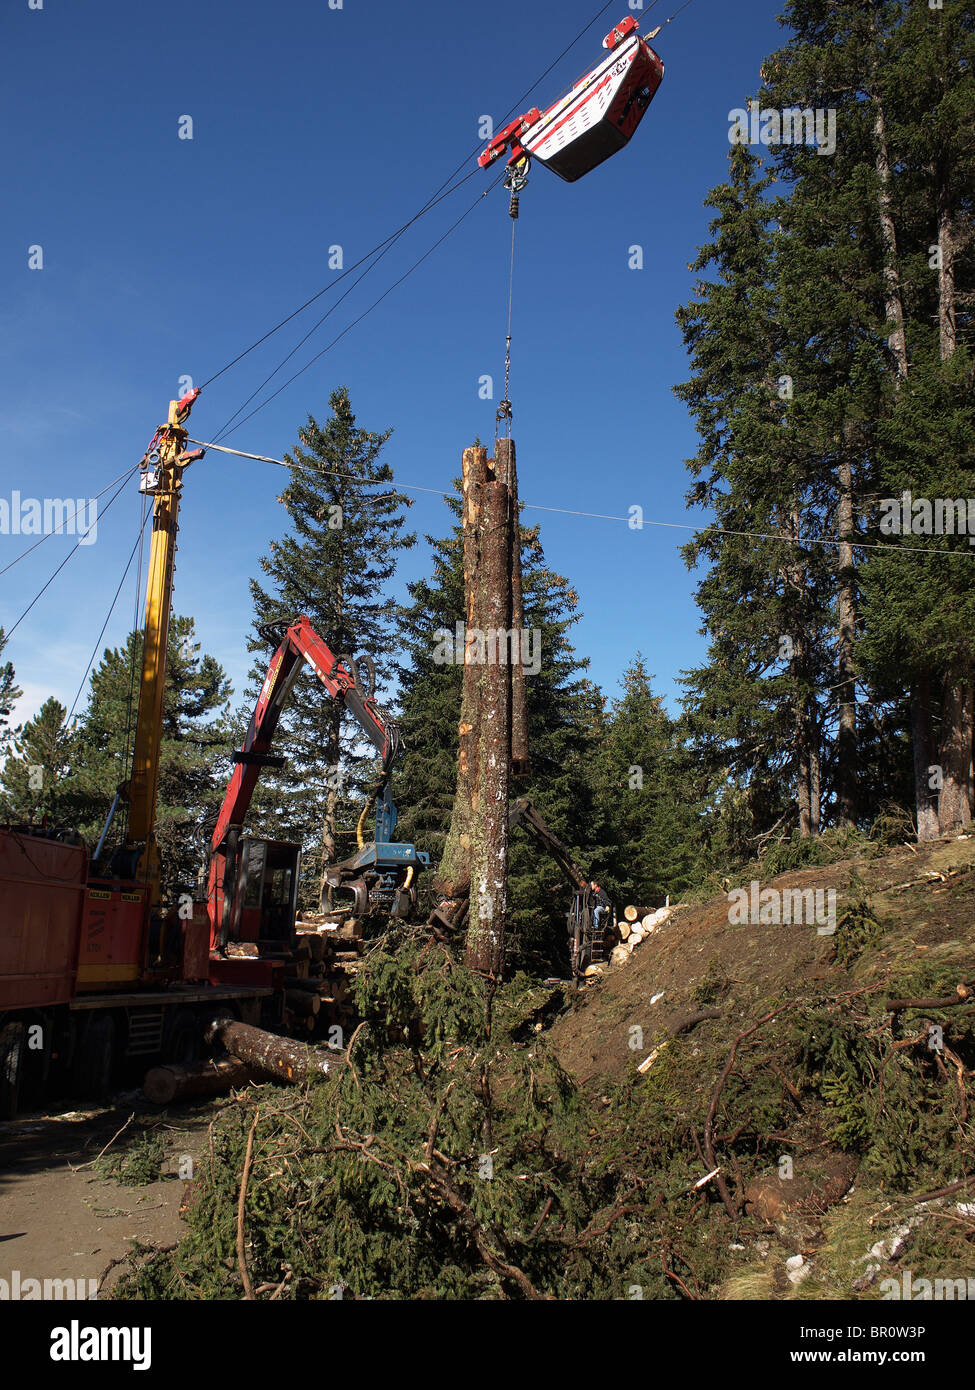 Mechanised logging operation a transporter on an an overhead wire rope transports trees down for debarking cutting Stock Photo